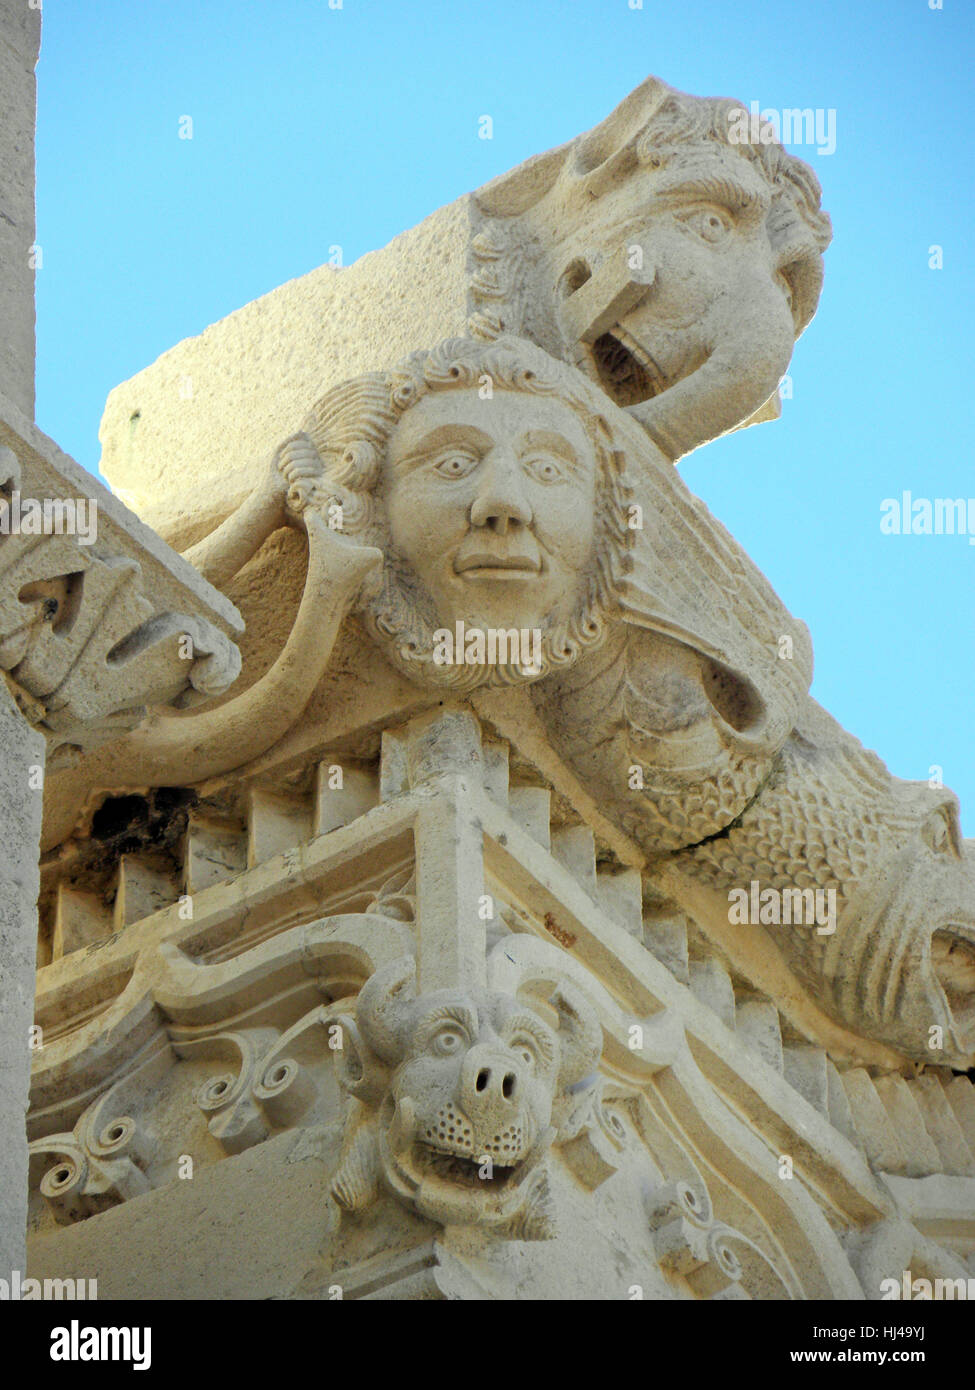 Korcula ancient artwork and craftmanship details,Croatia,Europe,8 - Stock Image